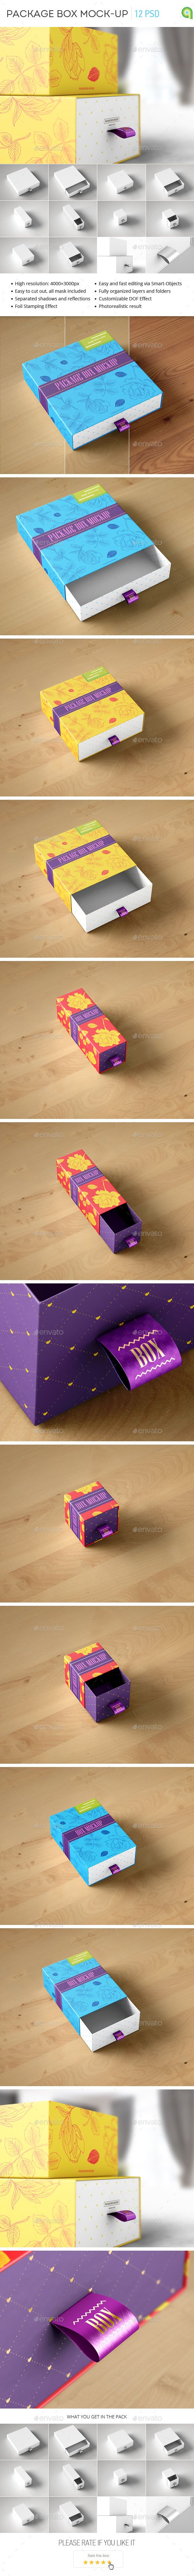 Package Box Mock-Up. Download here: http://graphicriver.net/item/package-box-mockup/14864357?ref=ksioks